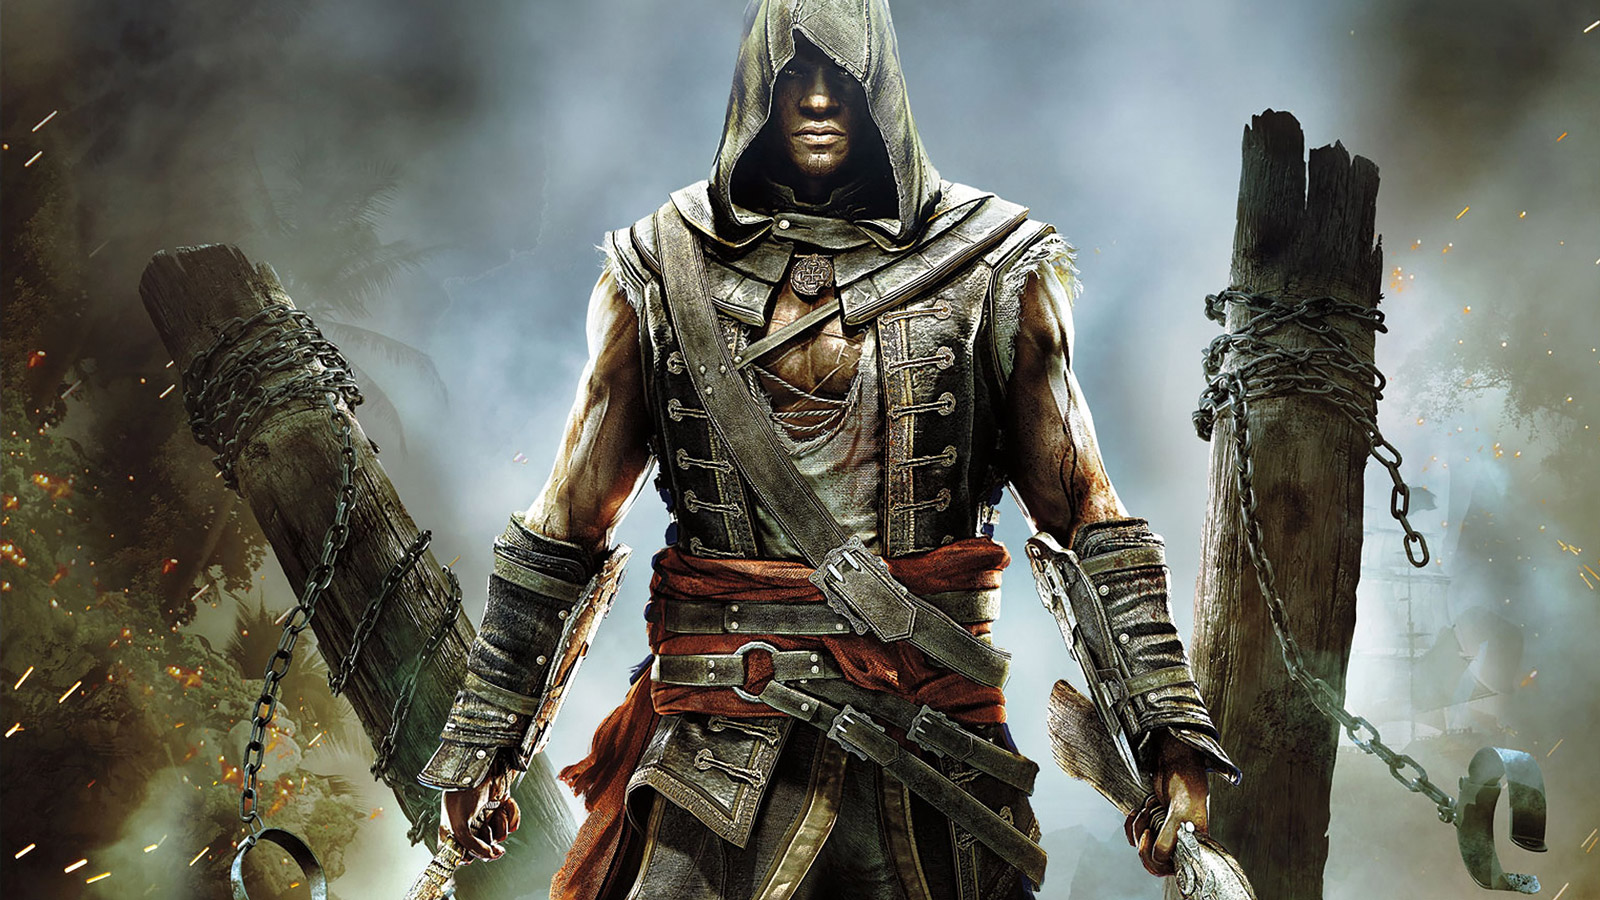 Free Assassin's Creed IV: Black Flag Wallpaper in 1600x900